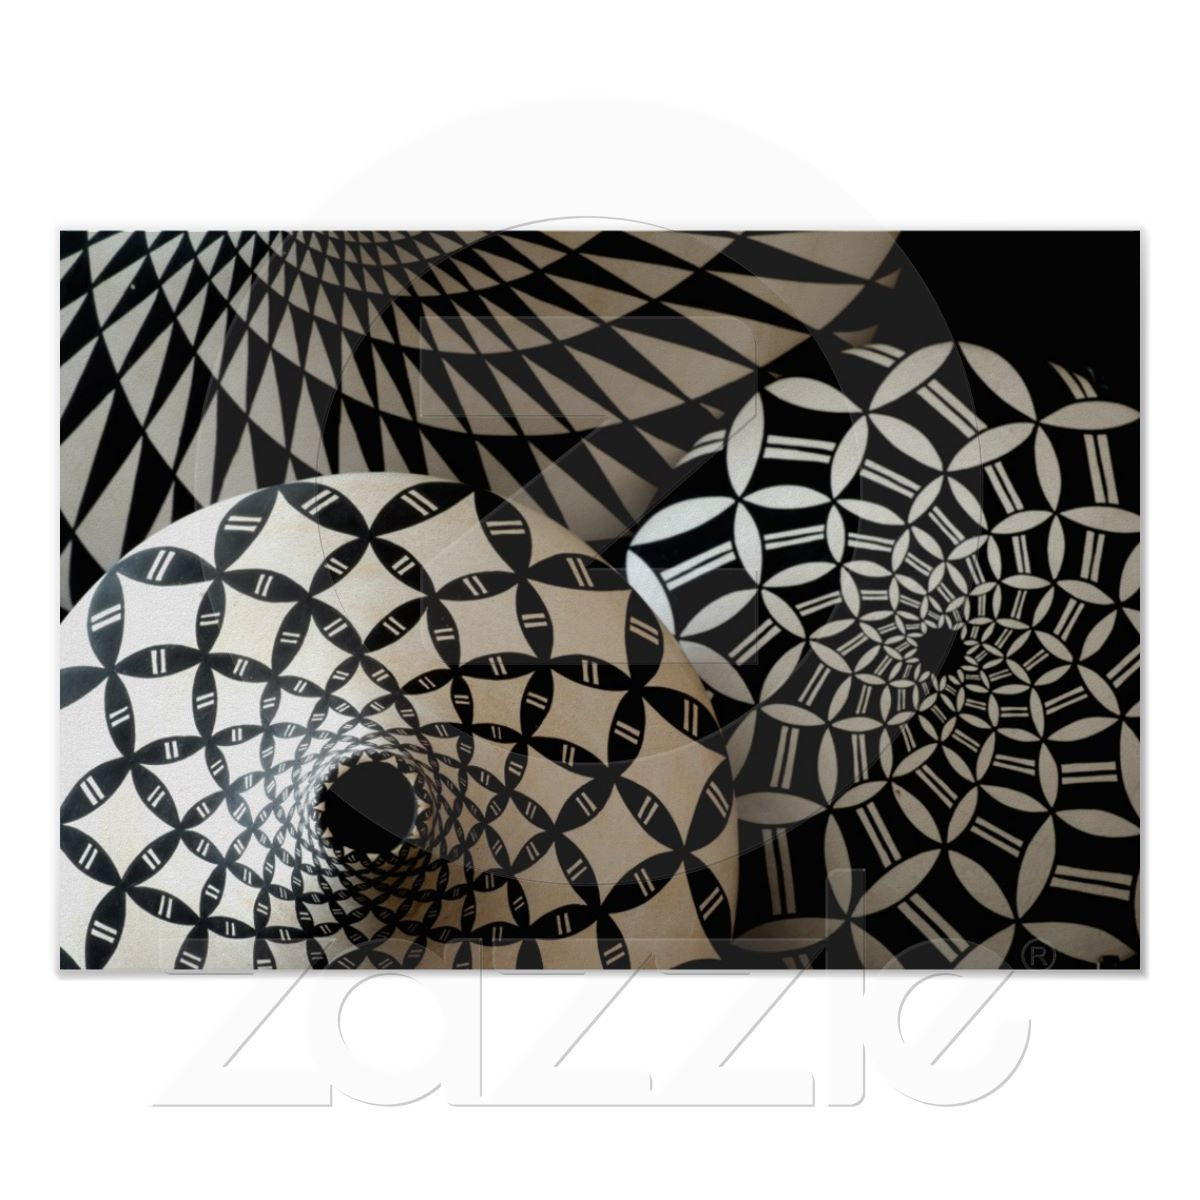 Zazzle poster design -  Cricut Win Southwest American Indian Art Handicrafts 3 Poster From Zazzle